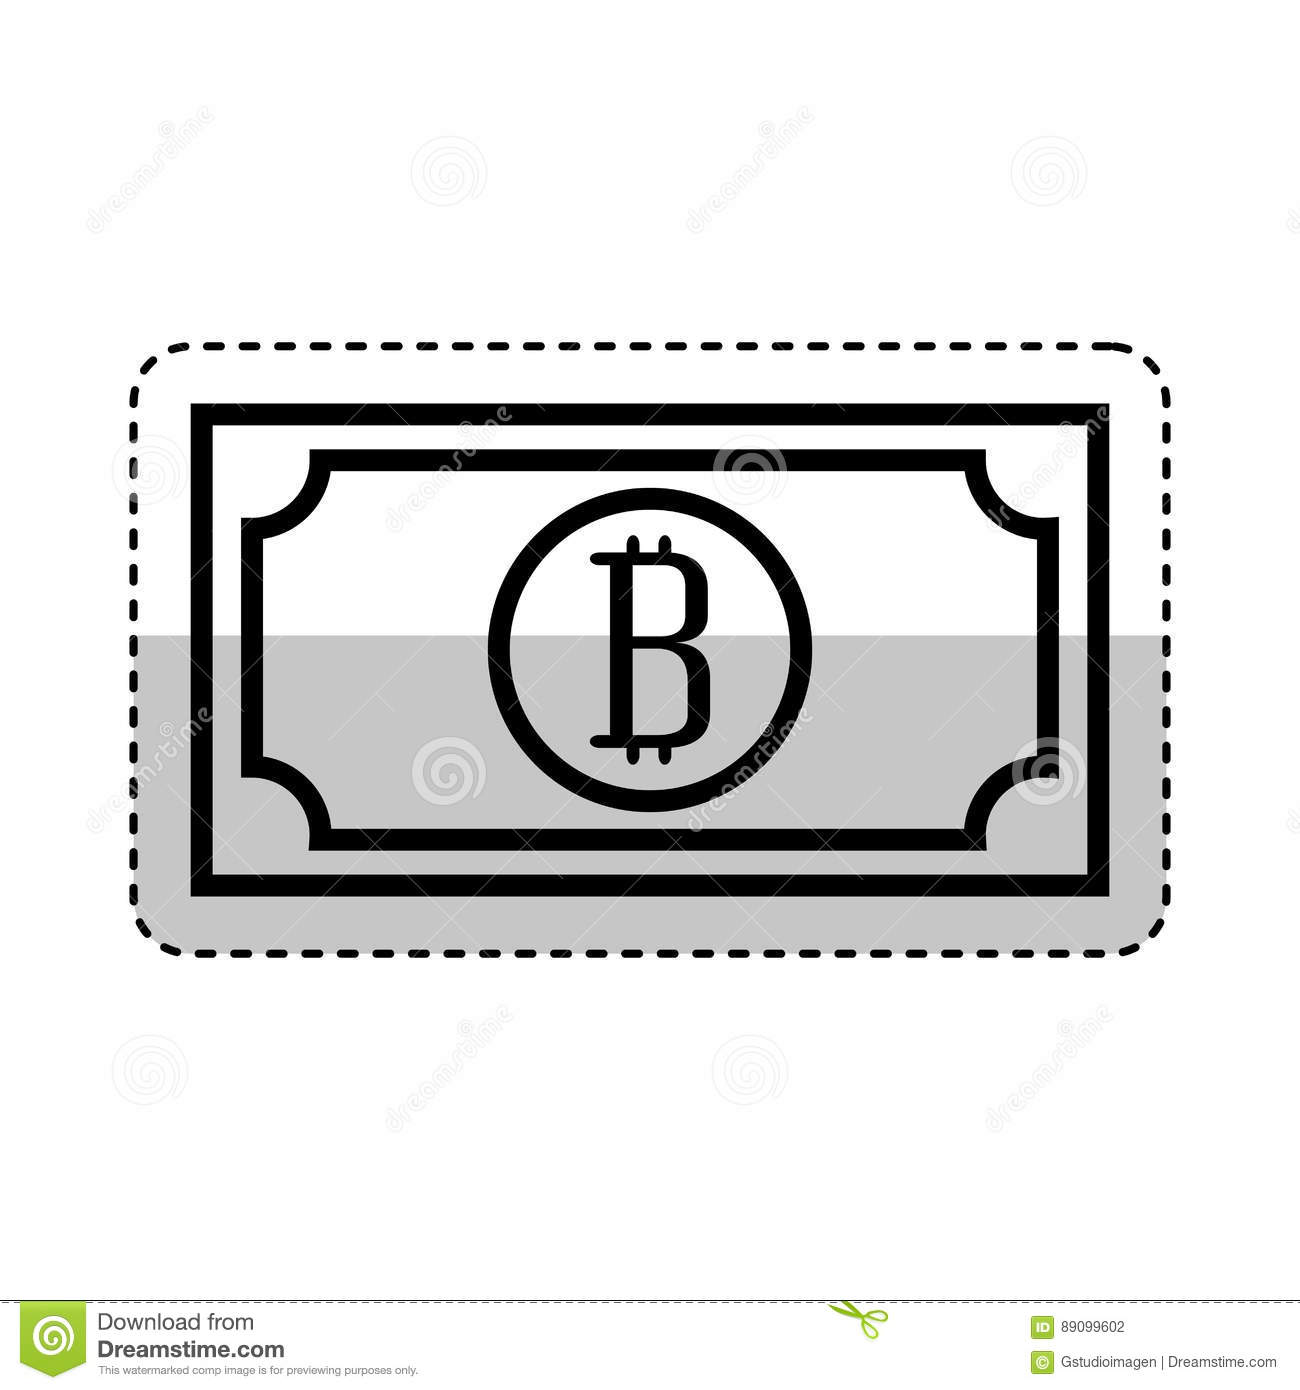 Bitcoin keyboard symbol que es bitcoin core what are the names of the special symbols on a keyboard buycottarizona